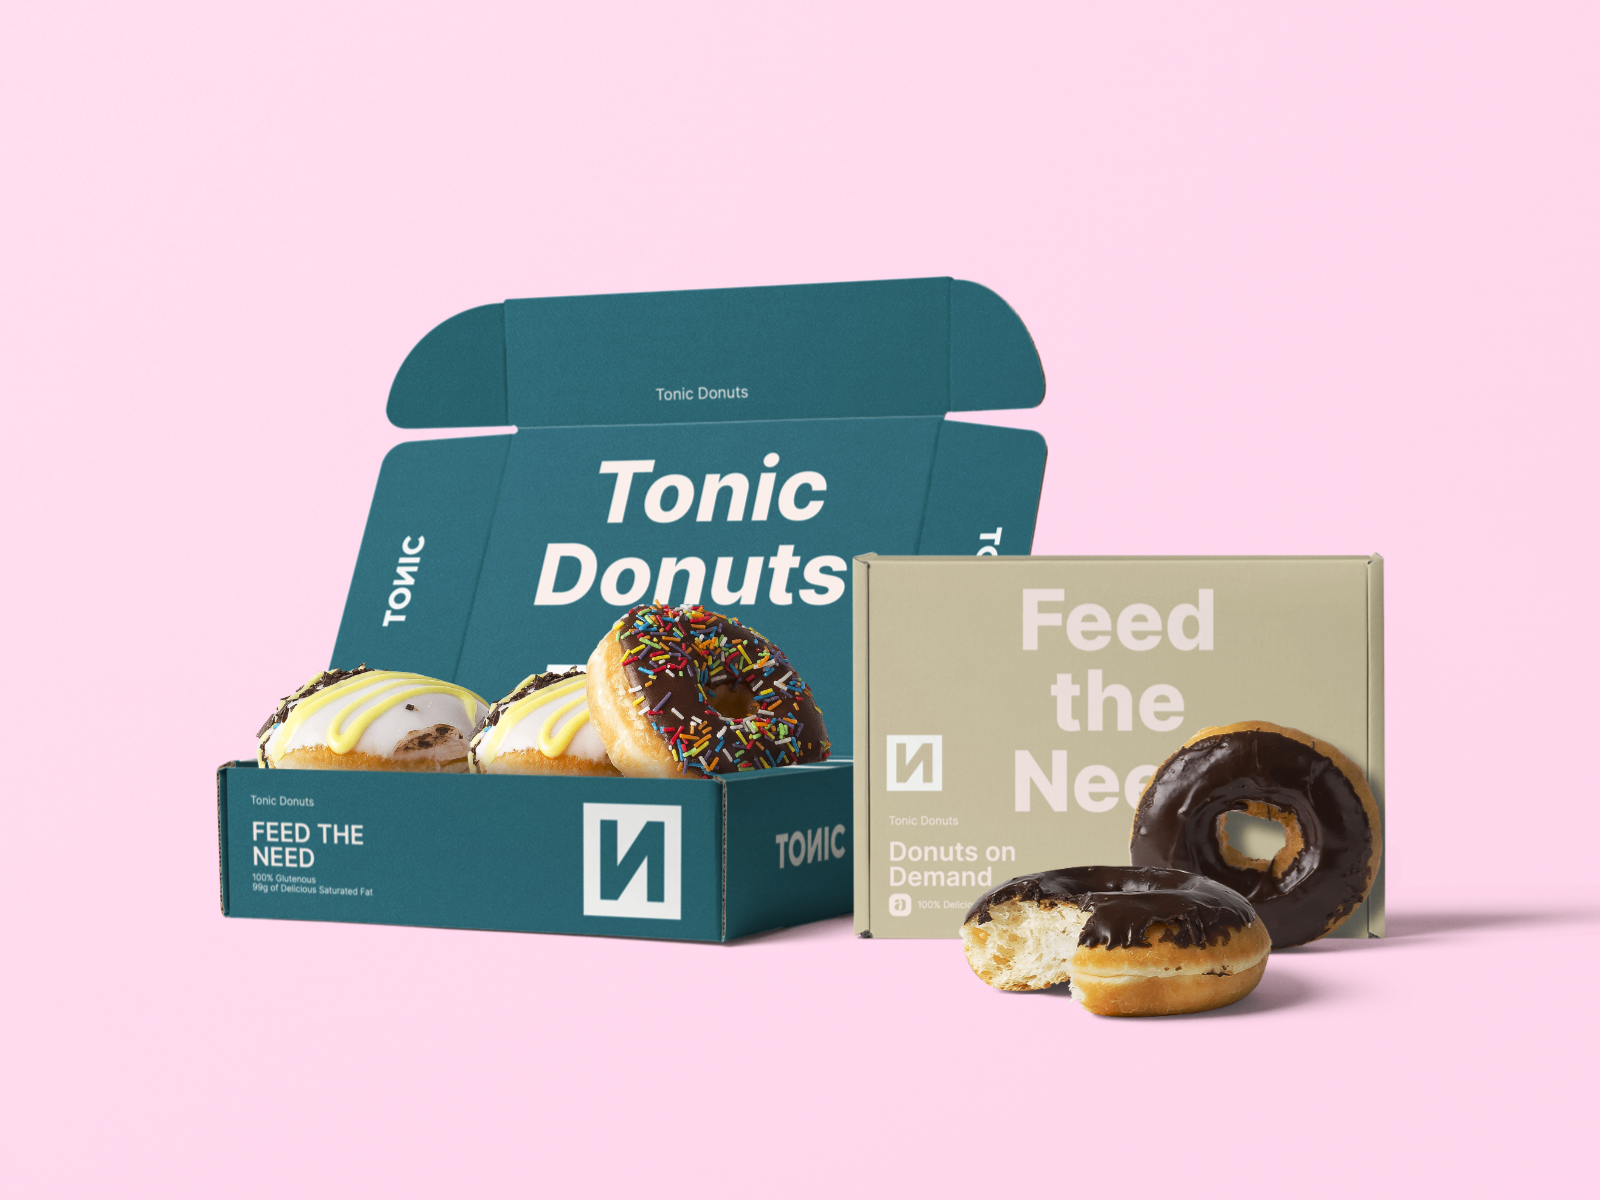 Glutenous Donuts